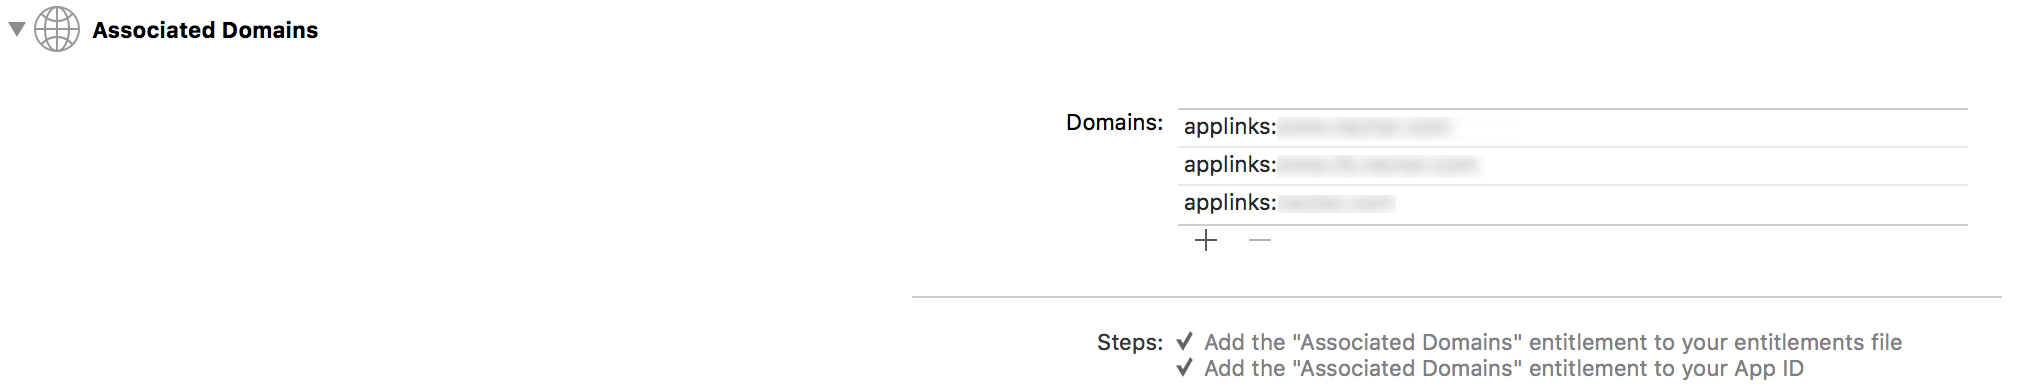 Picture 1 - Associated Domains Section in Xcode - Capabilities - tab